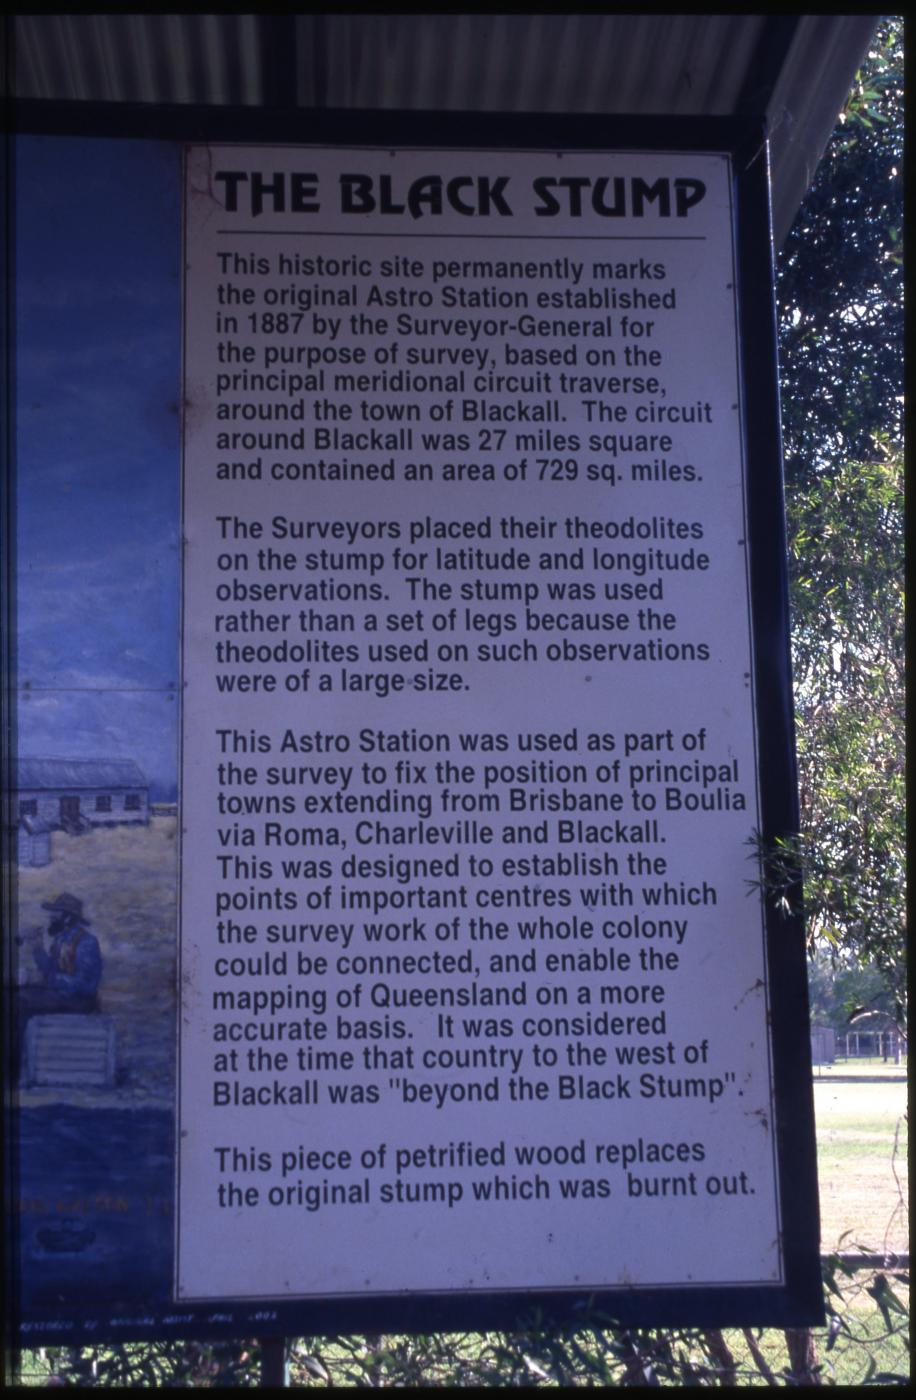 Astro Station Marker [Black Stump]: explanatory sign